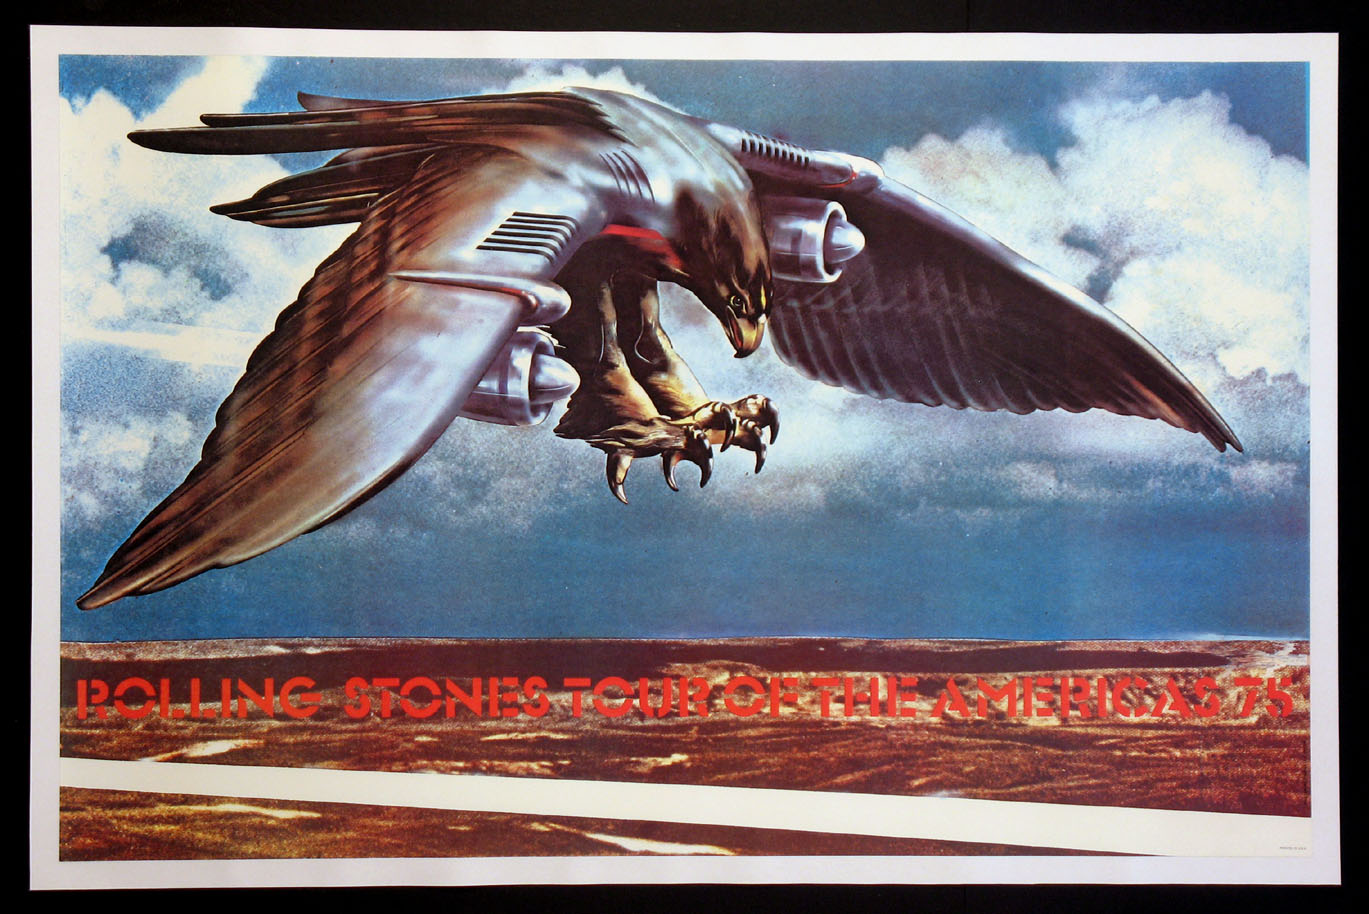 ROLLING STONES 1975 TOUR OF THE AMERICAS POSTER @ FilmPosters.com